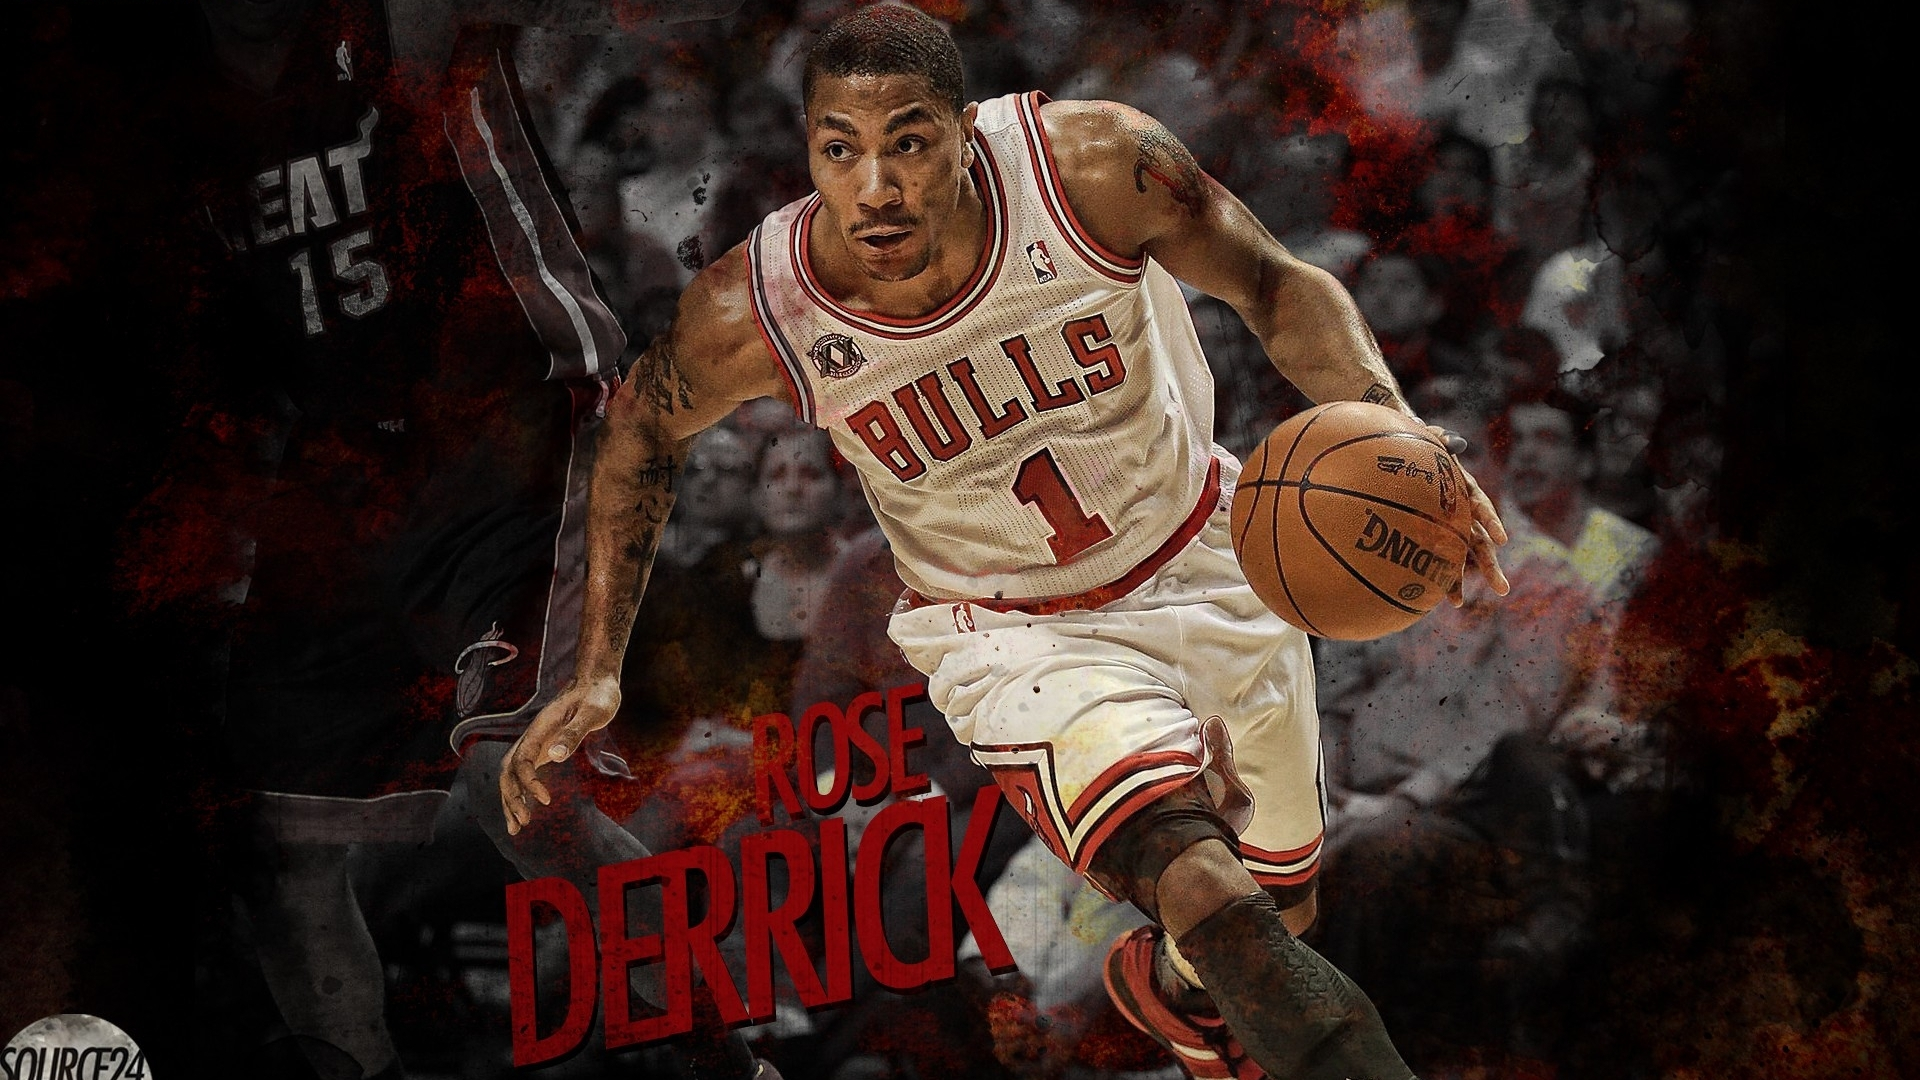 Derrick Rose playing basketball wallpaper in Sports wallpapers 1920x1080